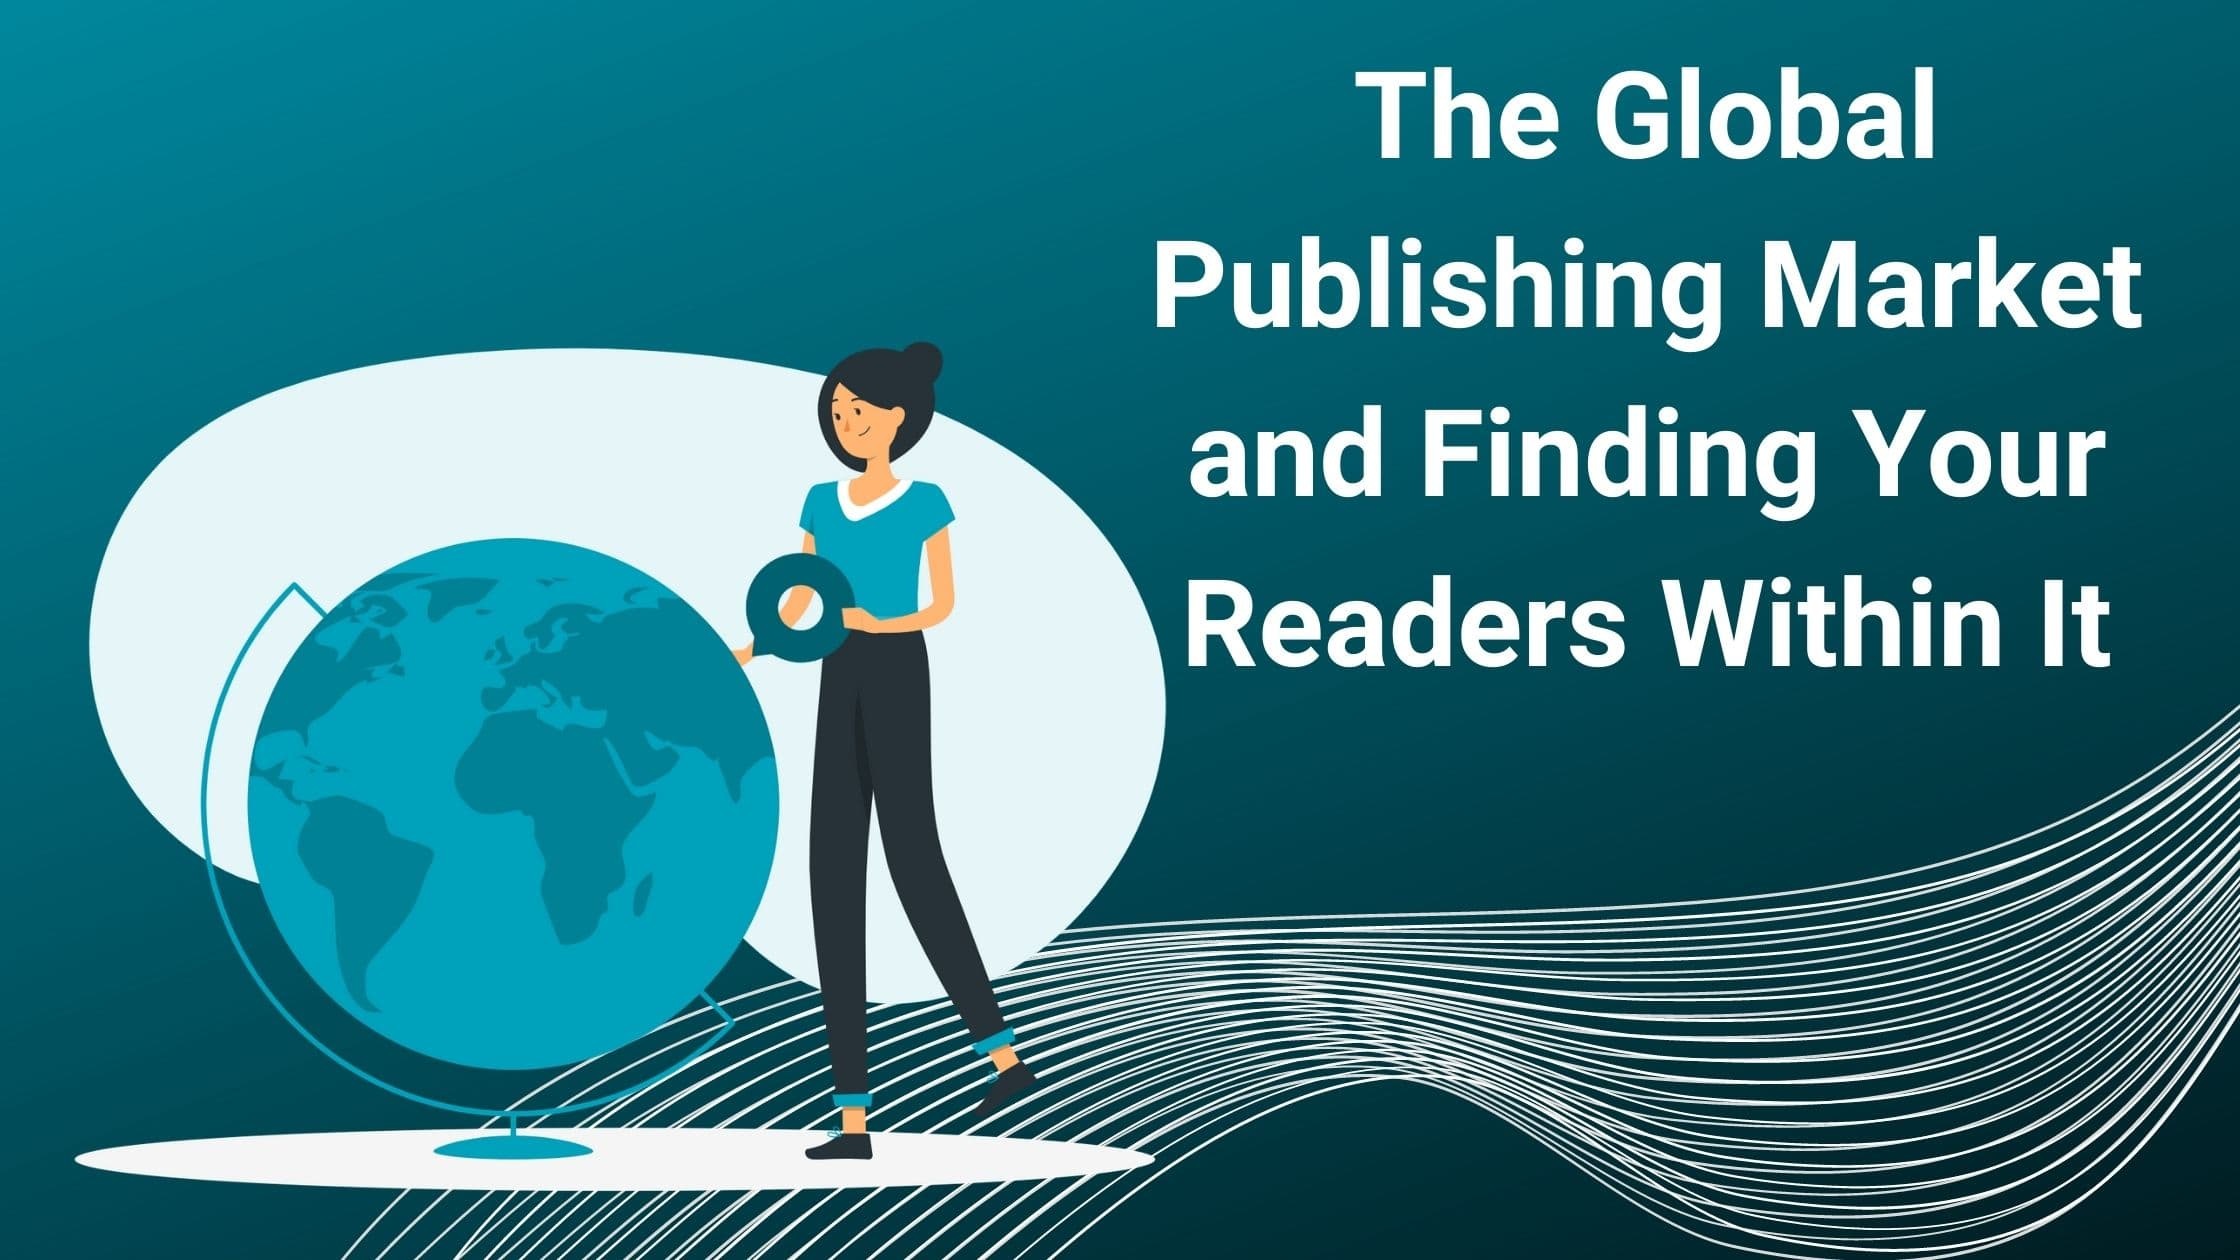 Global publishing market and finding readers